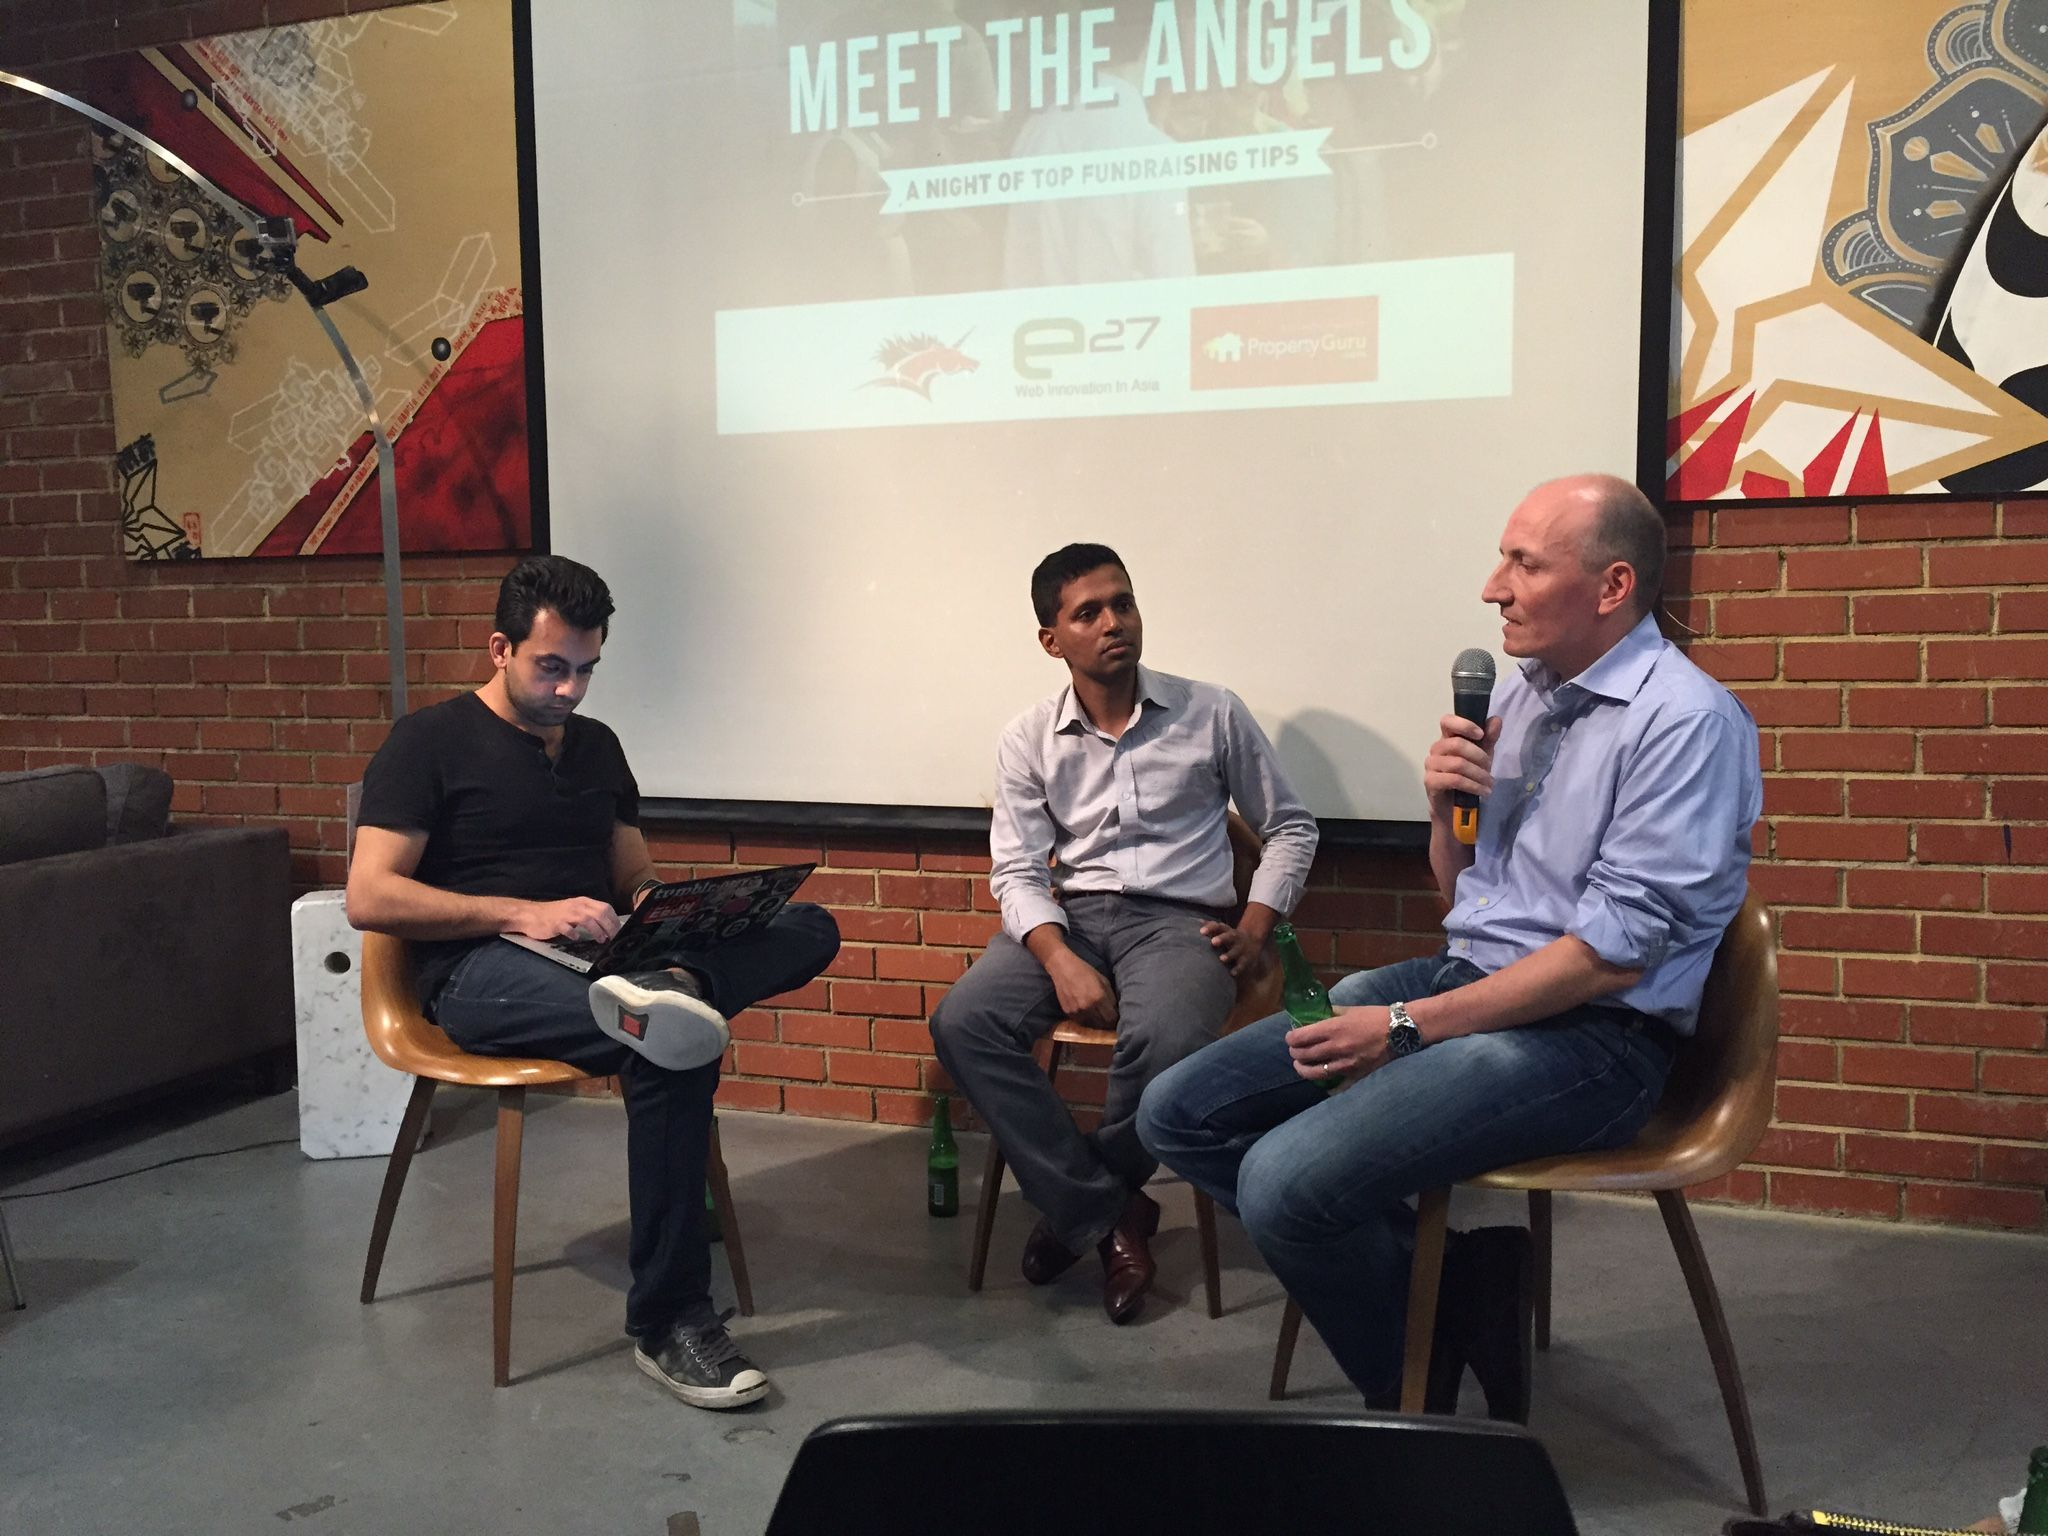 Investors' Advice to Startups in Lean Times Event